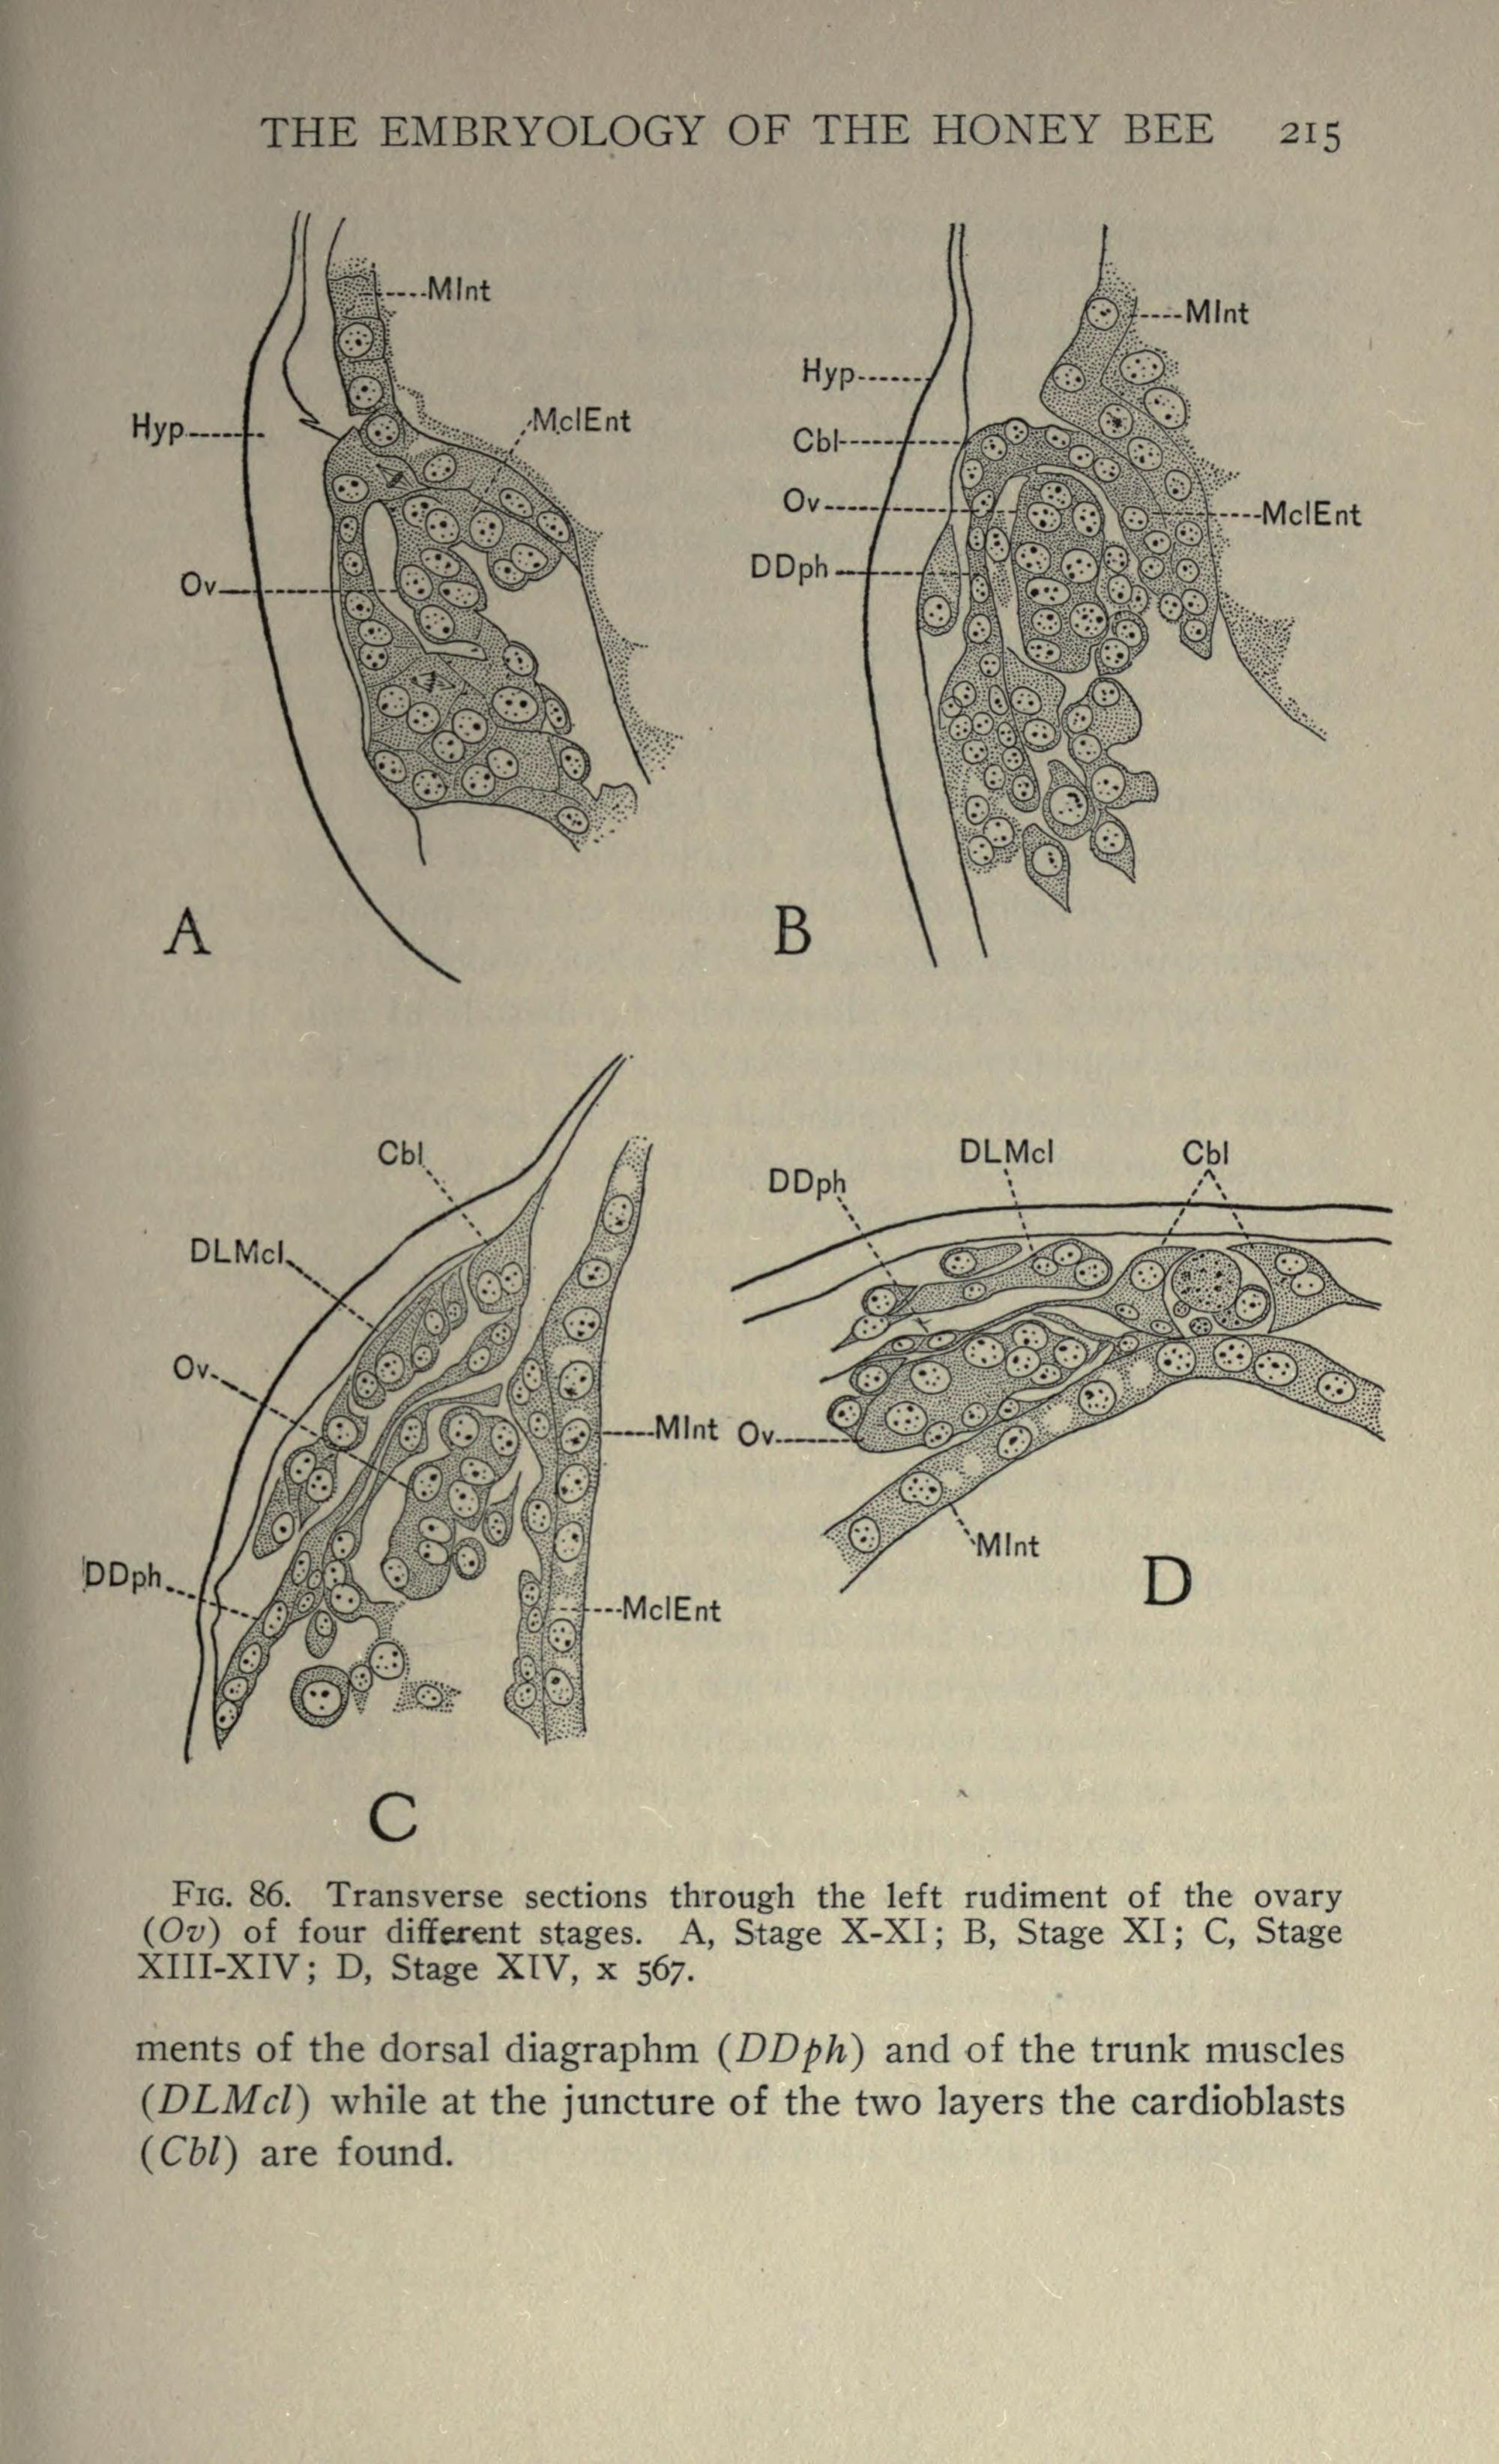 hight resolution of file the embryology of the honey bee page 215 bhl21526704 jpg